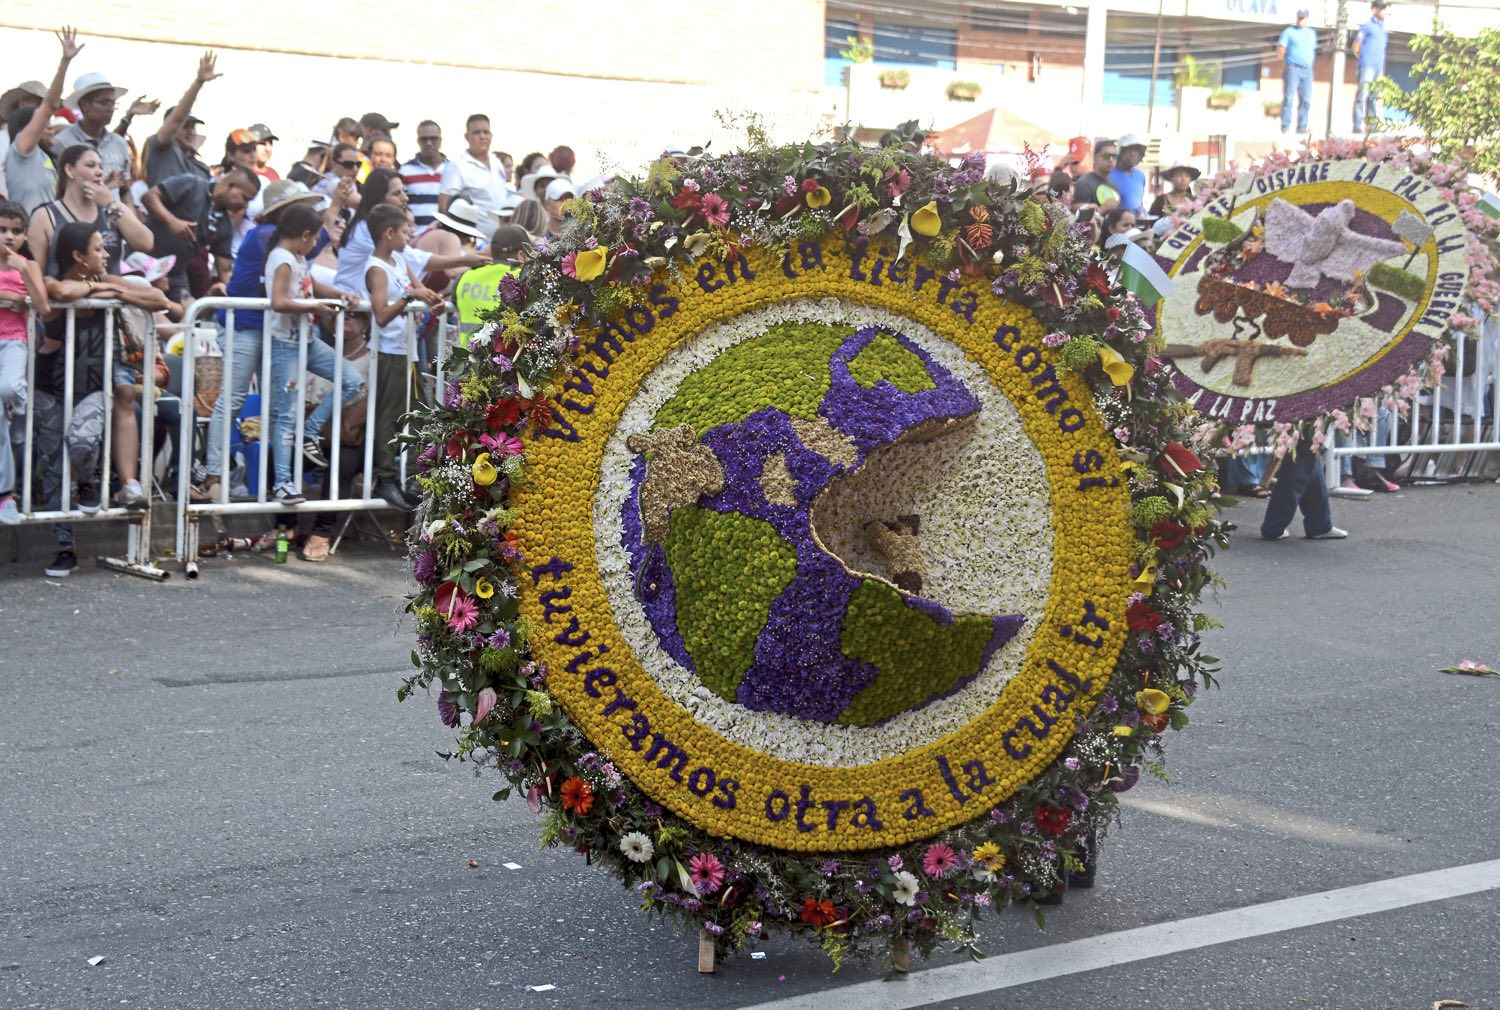 """A flower farmer carries an elaborate flower arrangement on a wooden """"silletas"""" Monday Aug. 7, 2017, during the 60th anniversary of the flower festival in Medellin, Colombia. (Nate Guidry/Post-Gazette)"""